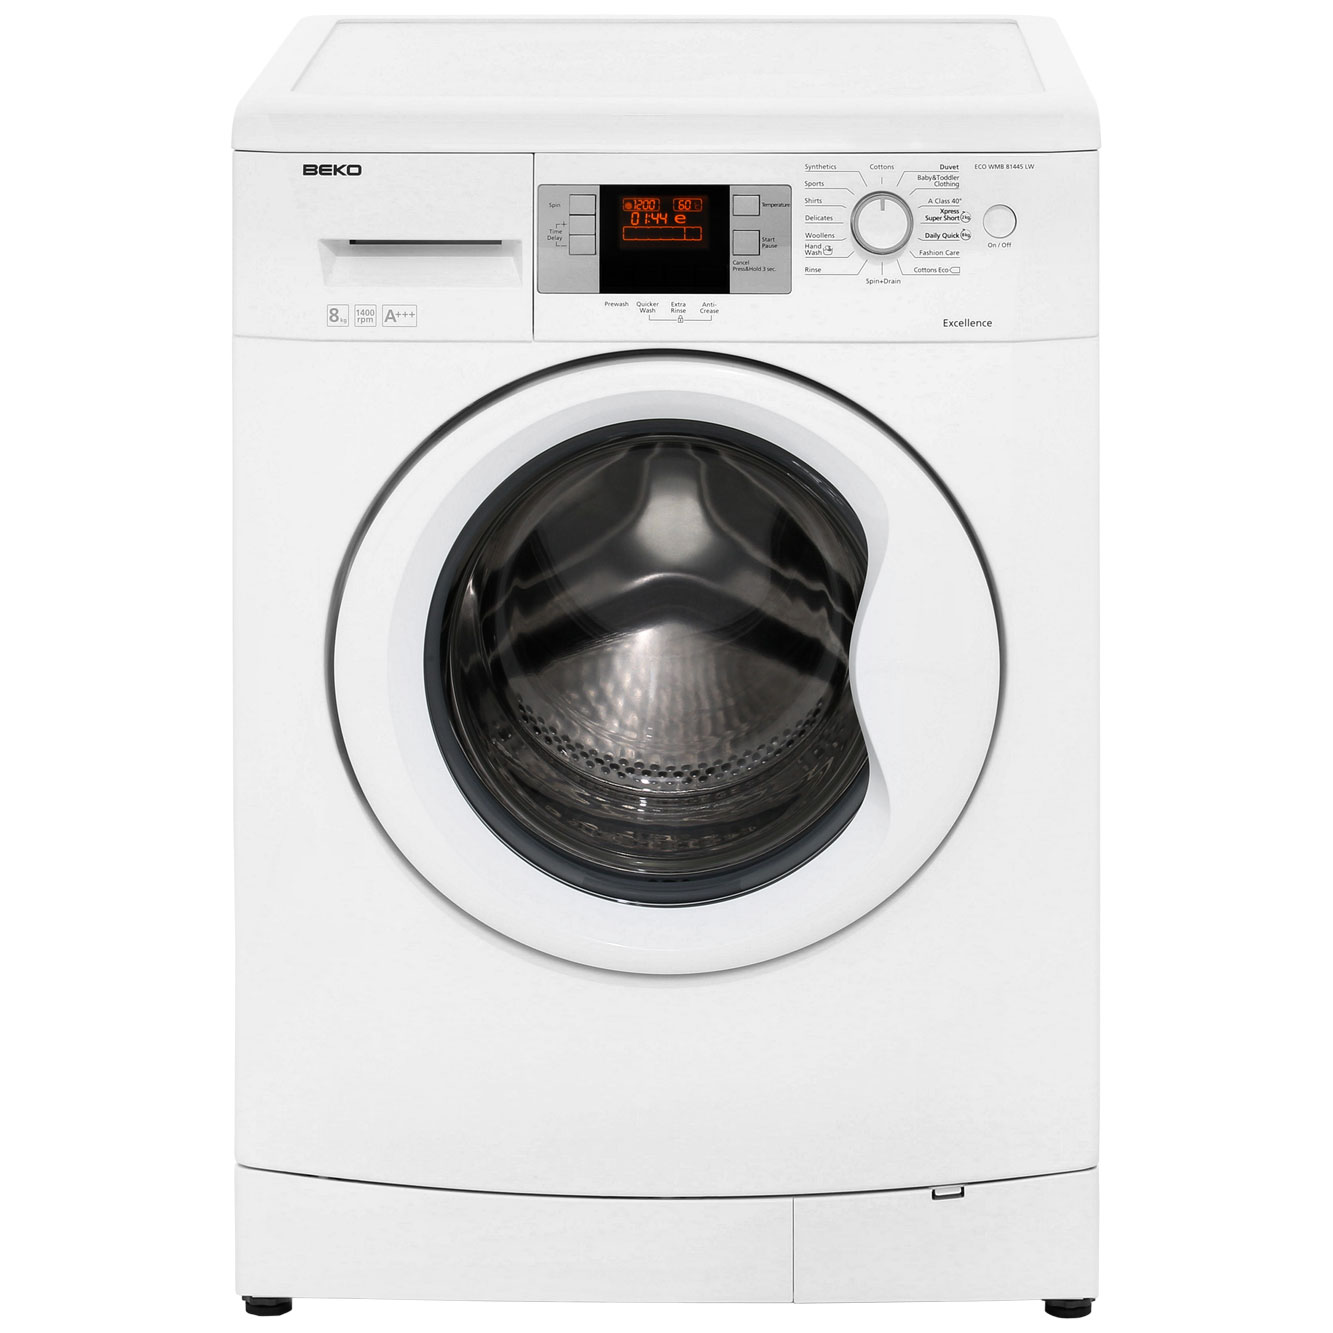 Beko EcoSmart ECOWMB81445LW 8Kg Washing Machine with 1400 rpm - White